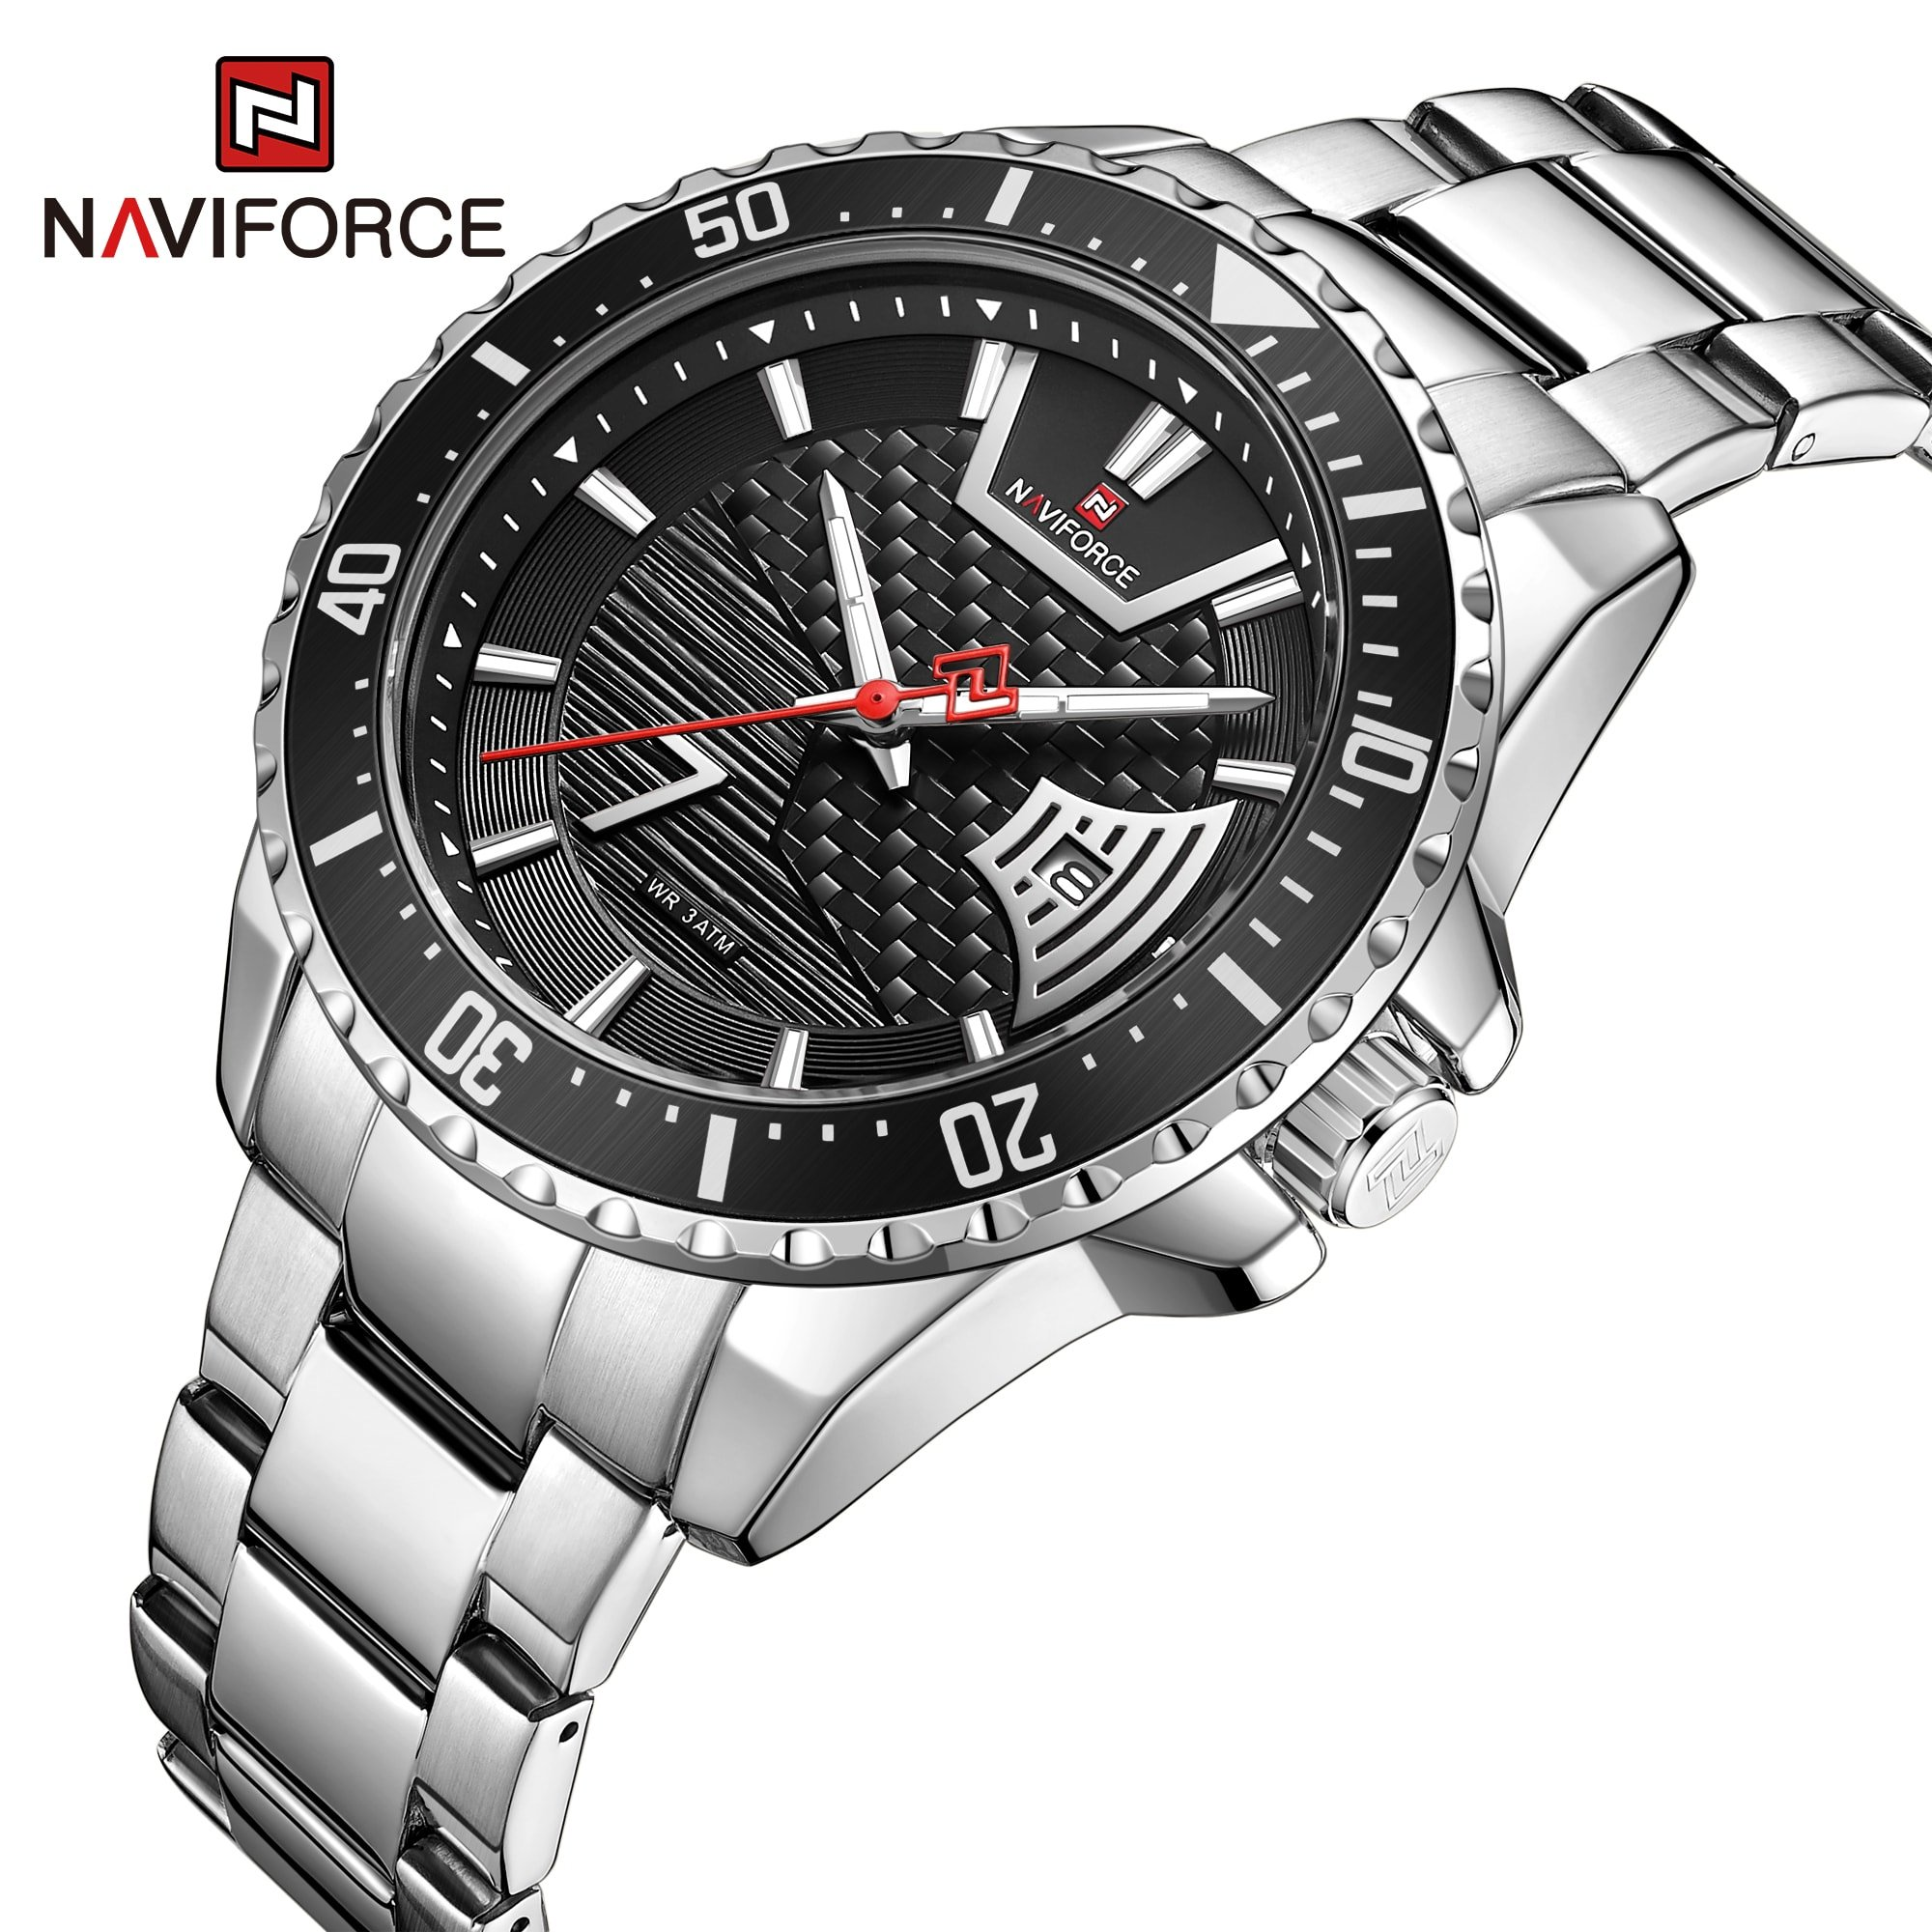 Naviforce NF-9191 Chain Strap Silver &  Black Color  Watch